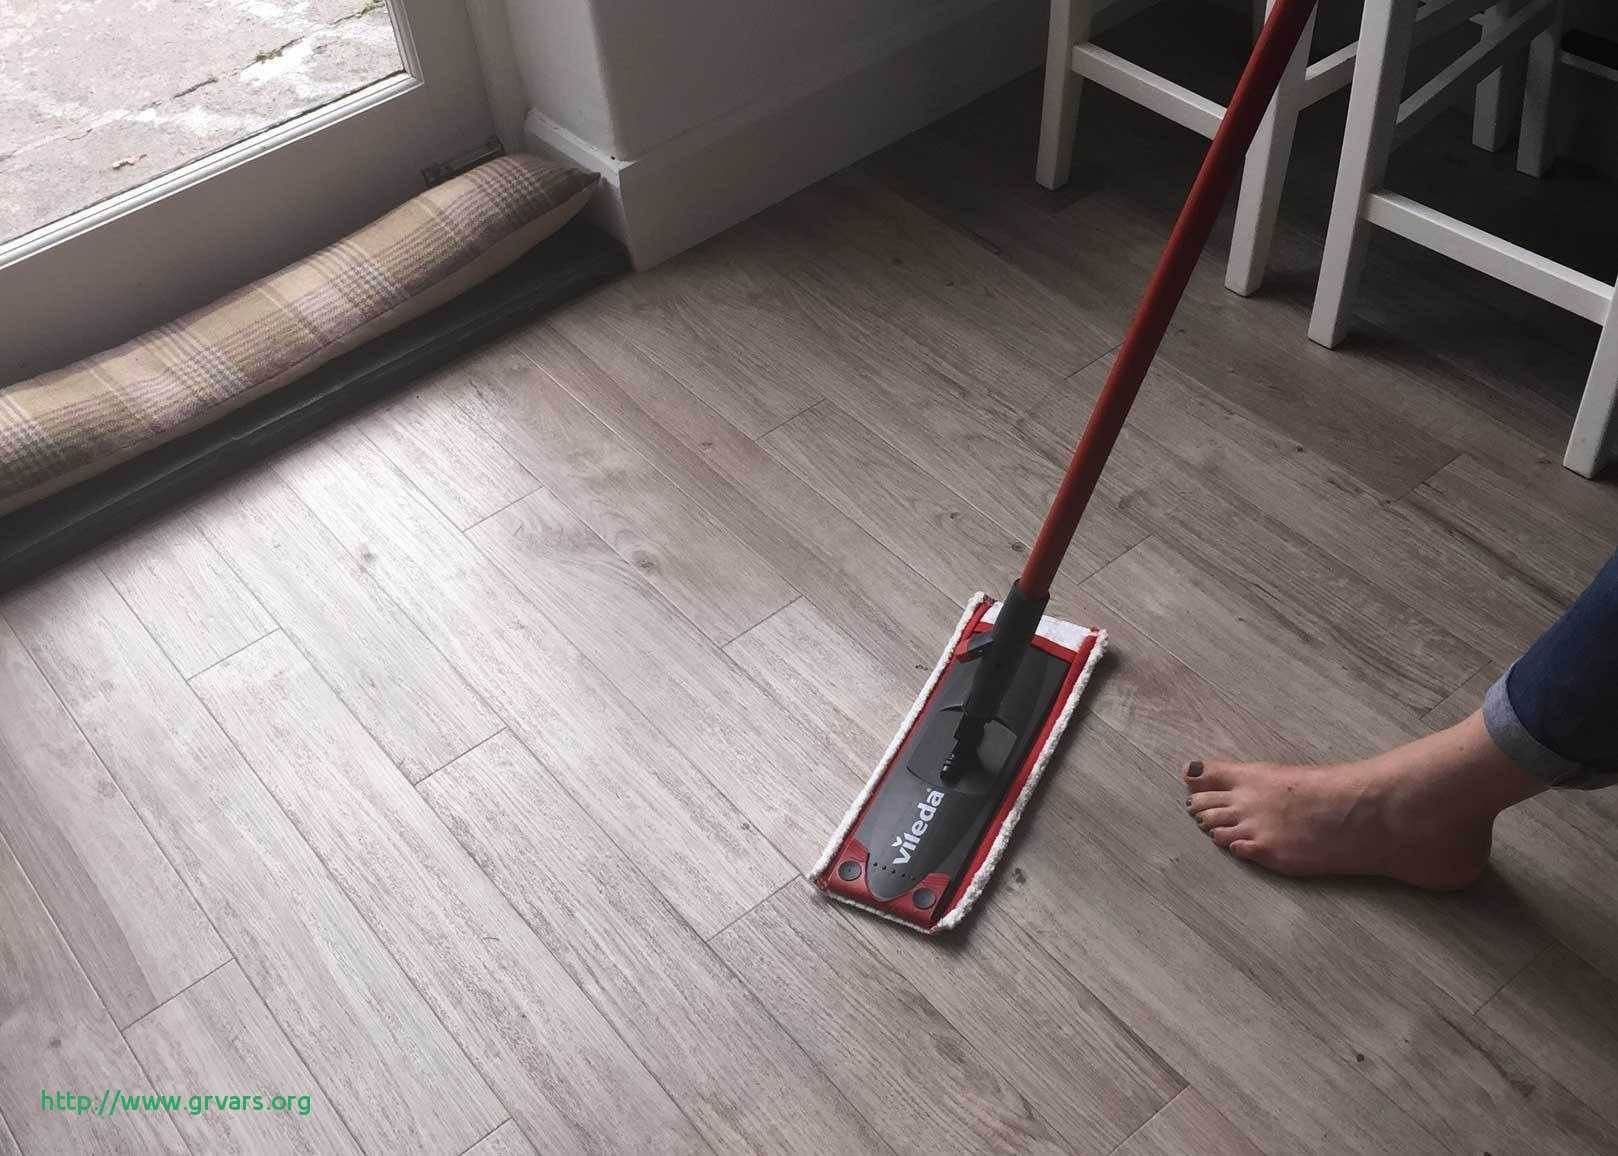 shark hardwood floor cleaner machine of 20 can you use a steam cleaner on laminate flooring youll love inside can you use a steam cleaner on laminate flooring unique of 20 frais can you use